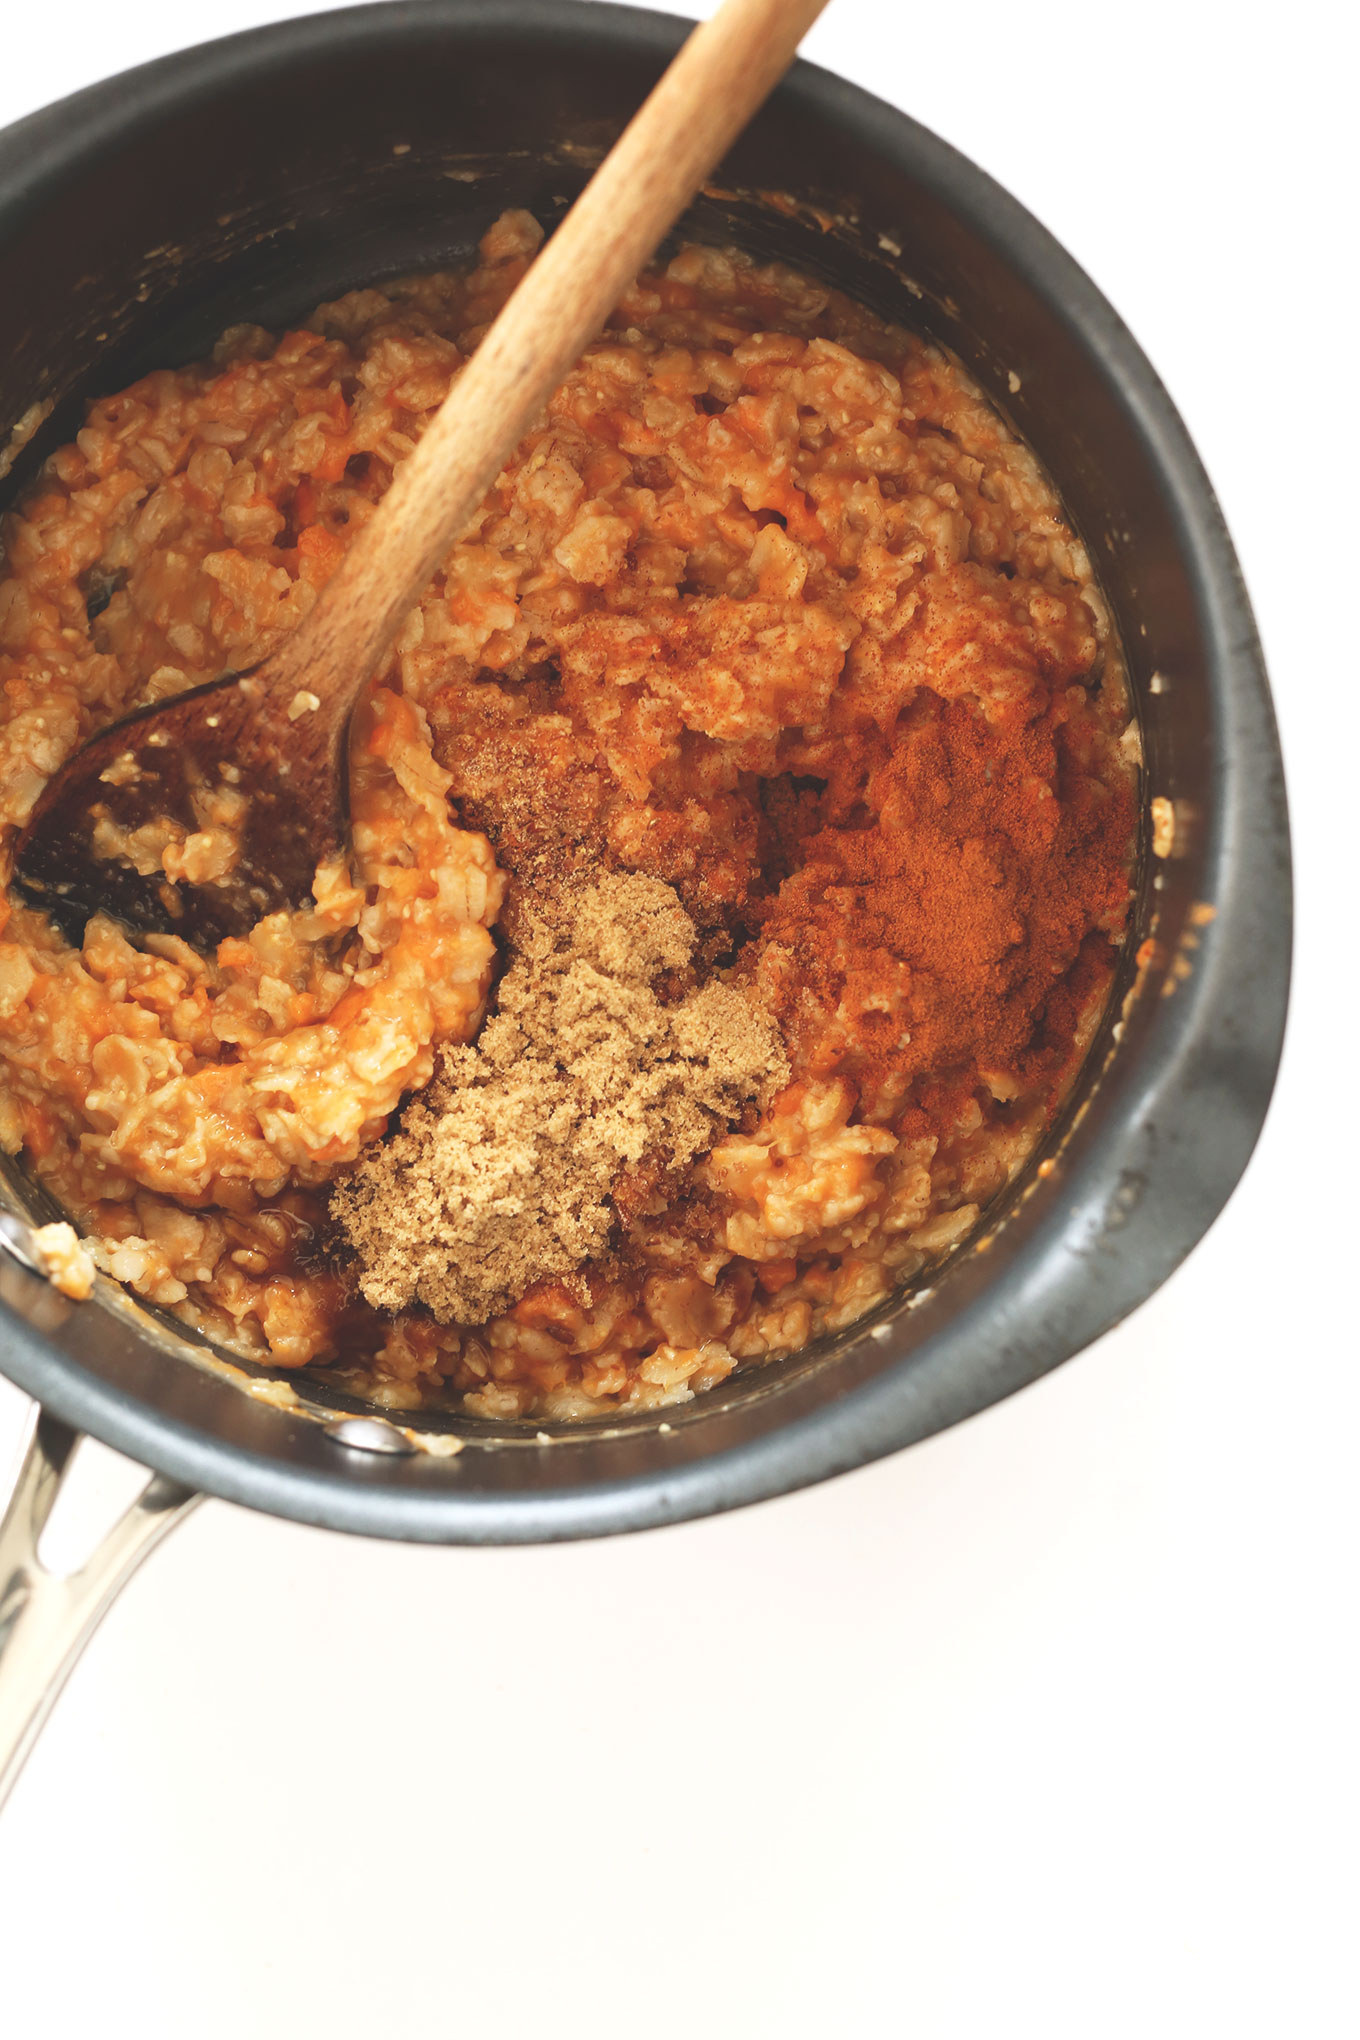 Saucepan filled with a batch of our Sweet Potato Pie Oats recipe